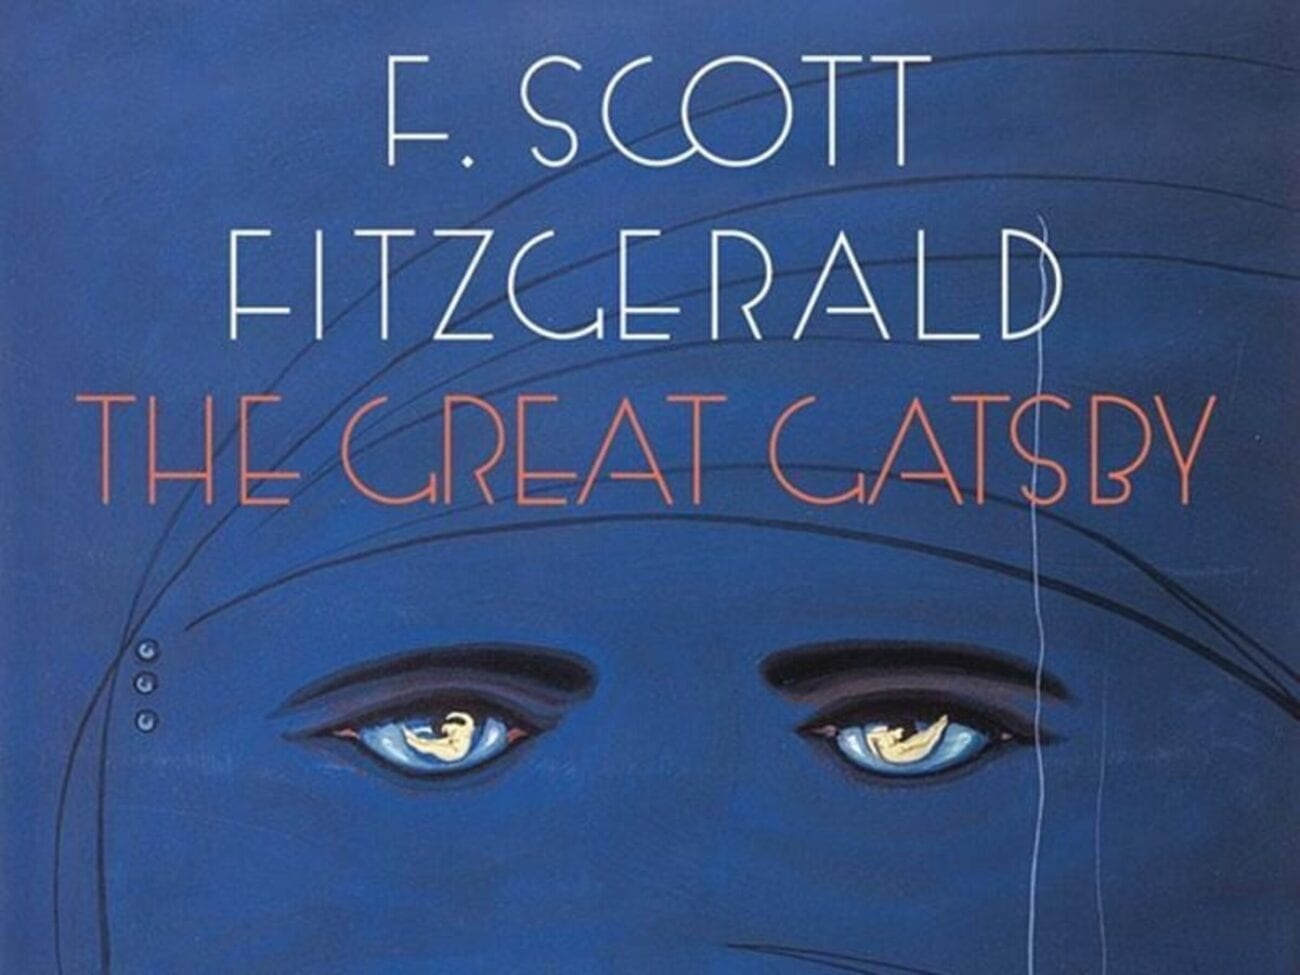 The 'Great Gatsby' is cherished throughout many generations. And its movies are no exception! Add these titles to your list then tell us your favorite.